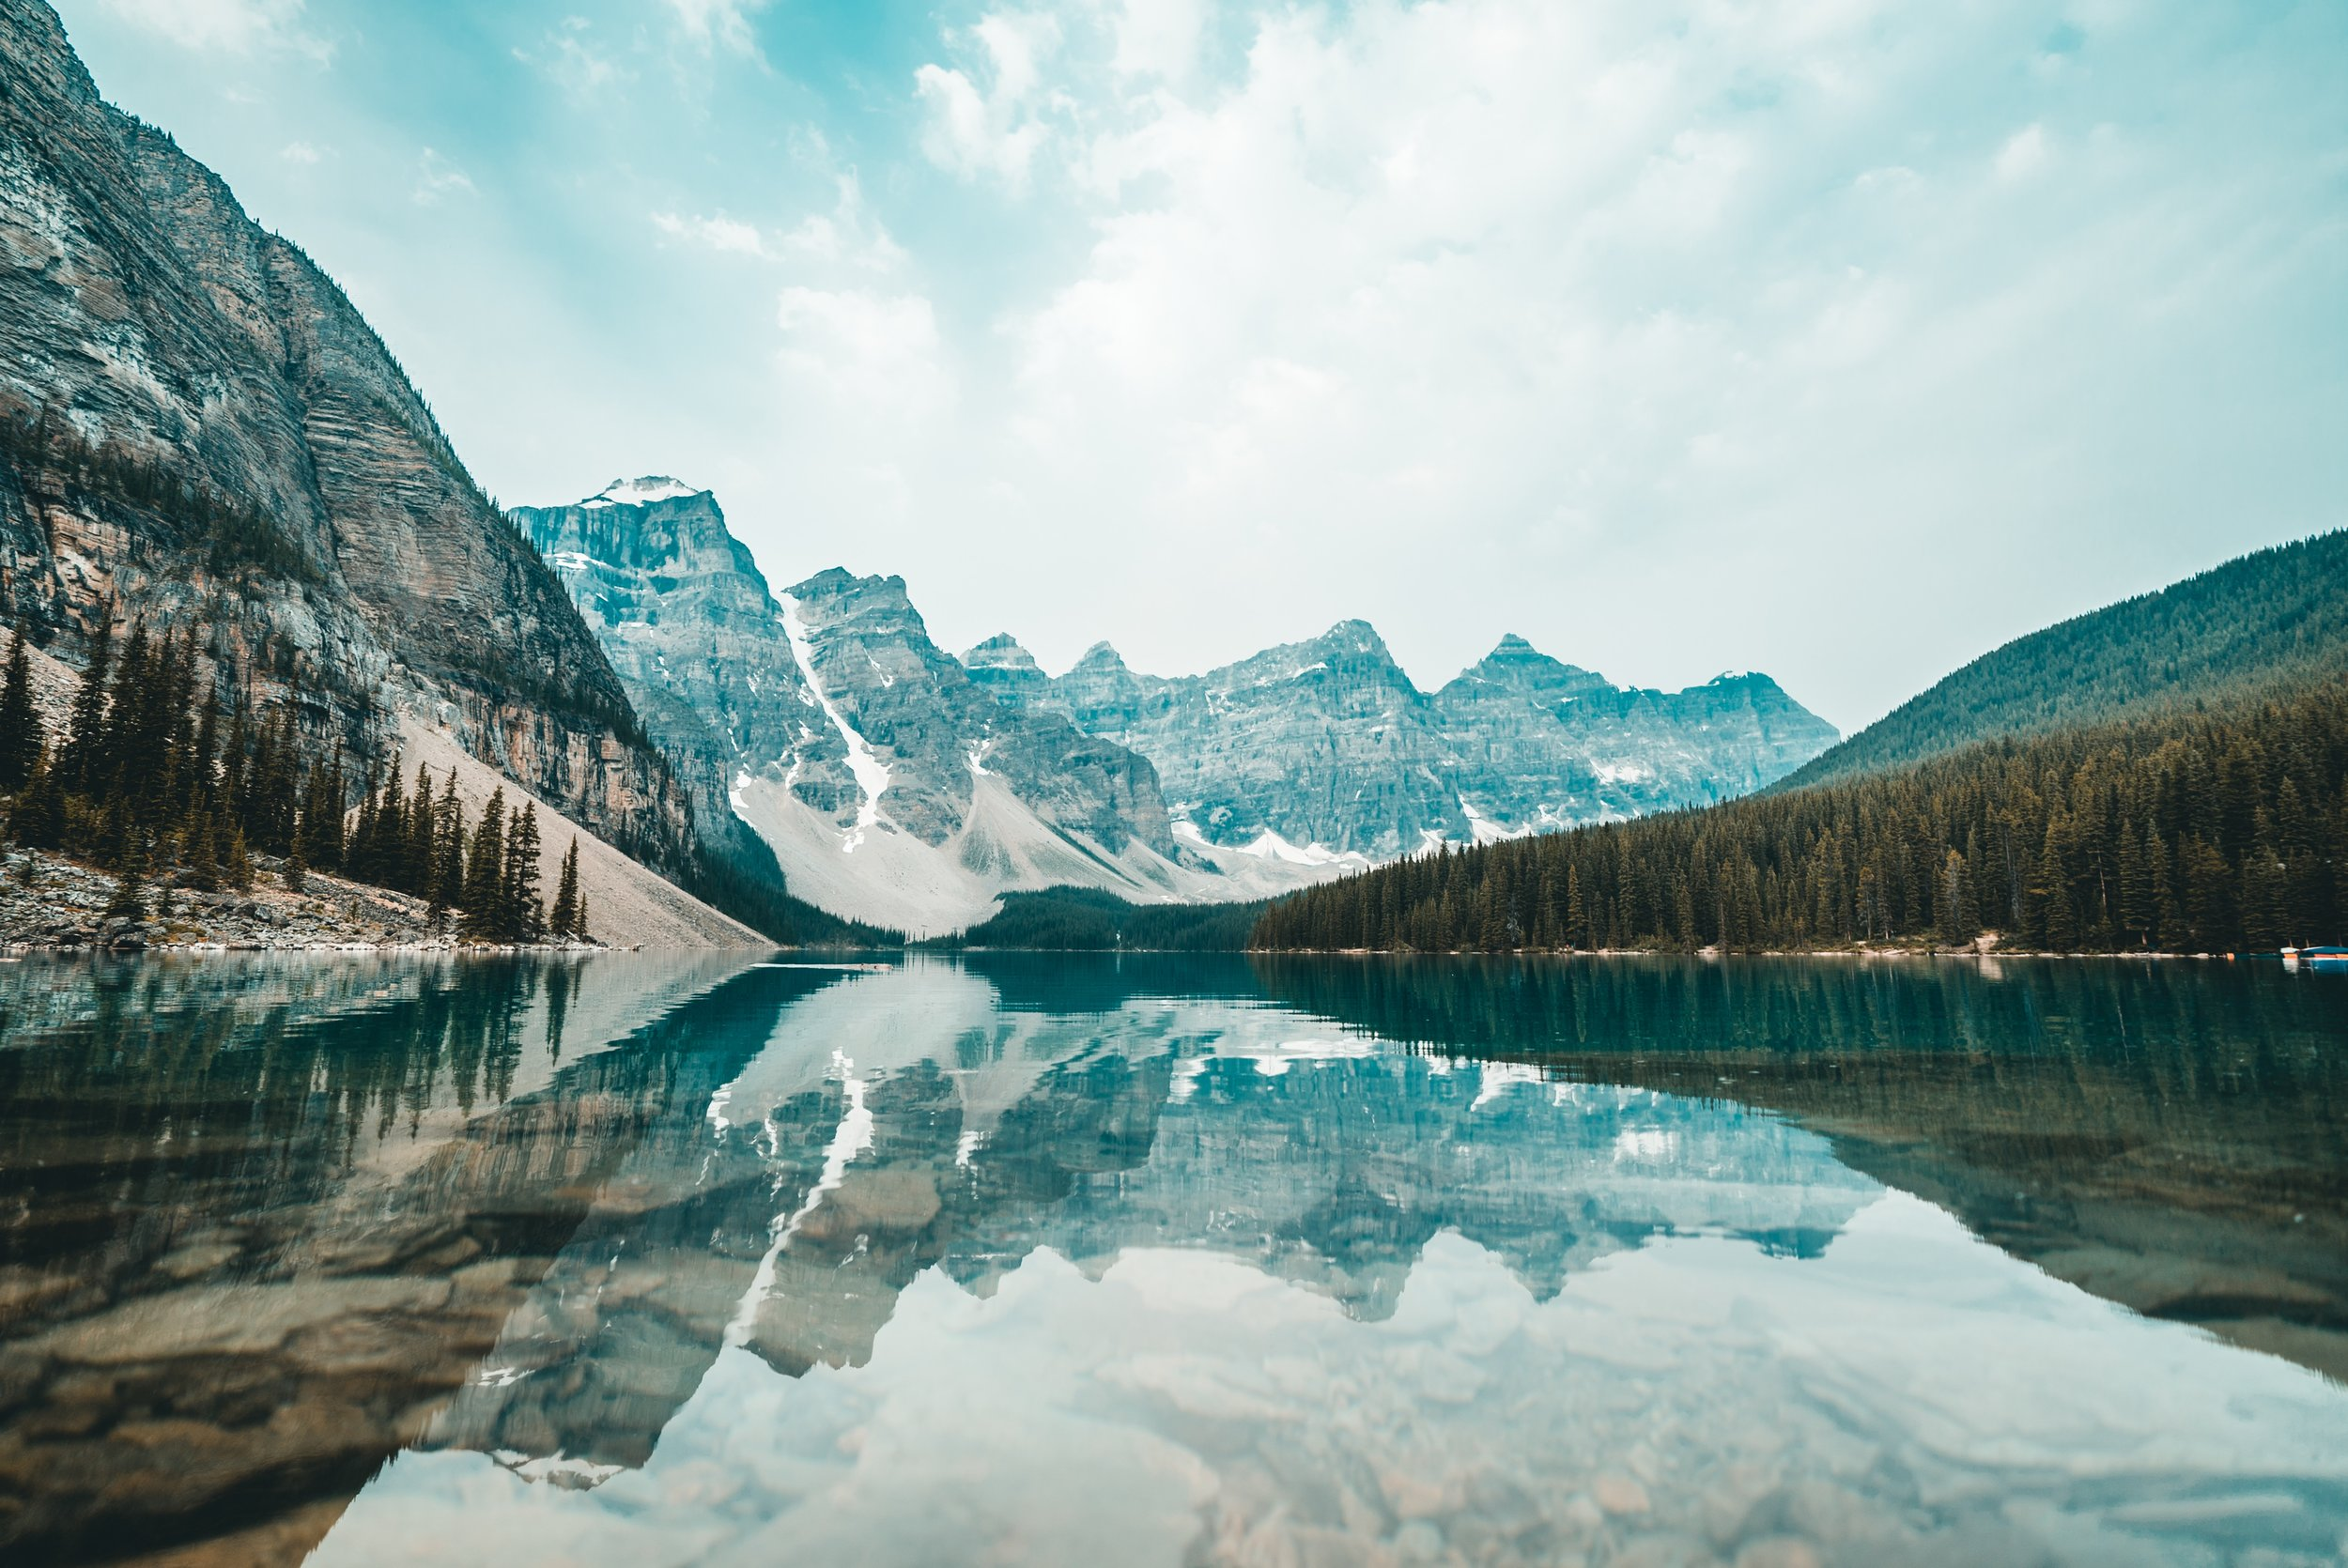 clear glacial lake and mountains in canada